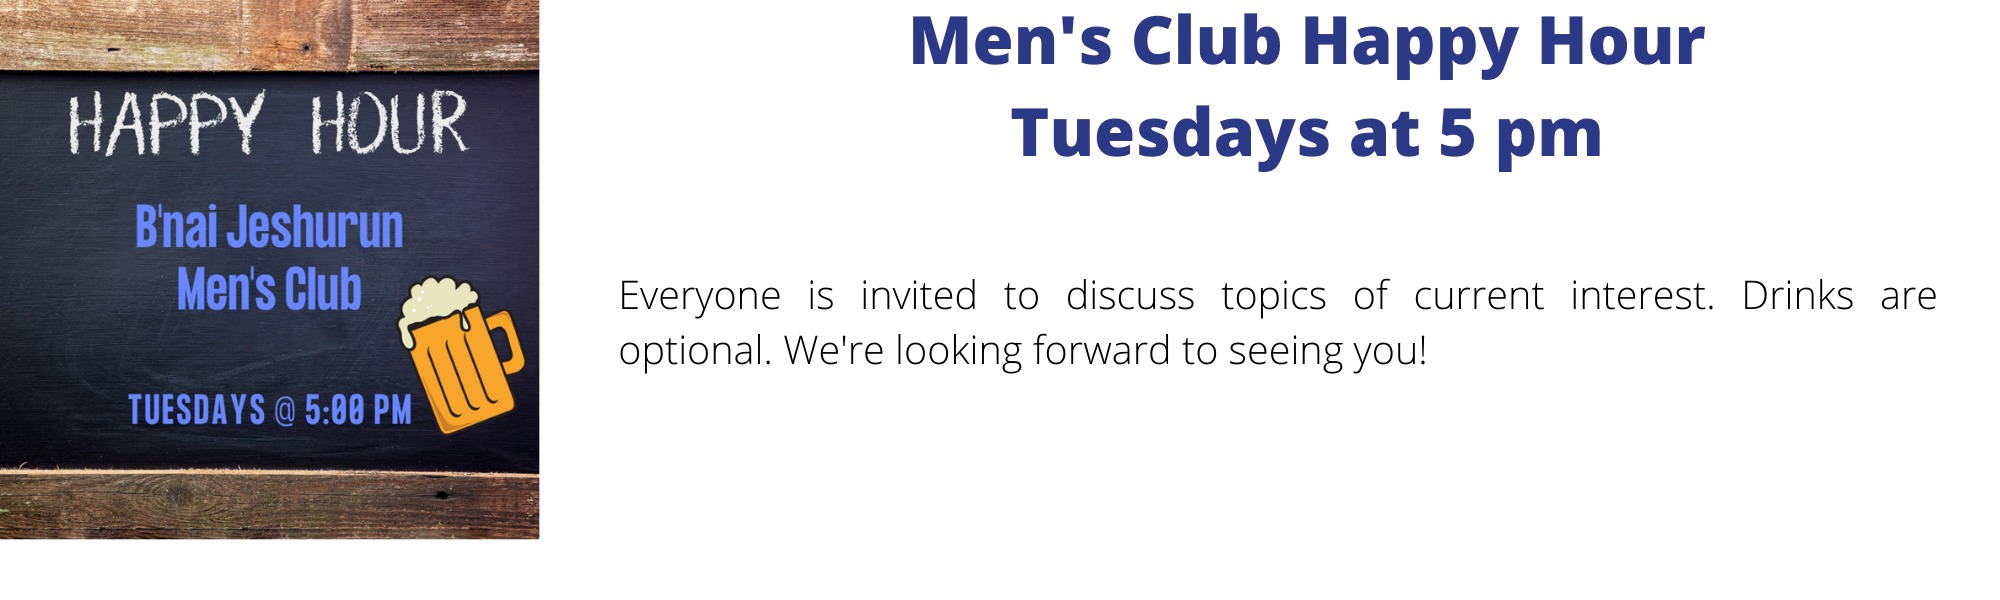 Banner Image for Men's Club Happy Hour - Topics Listed at bottom of page